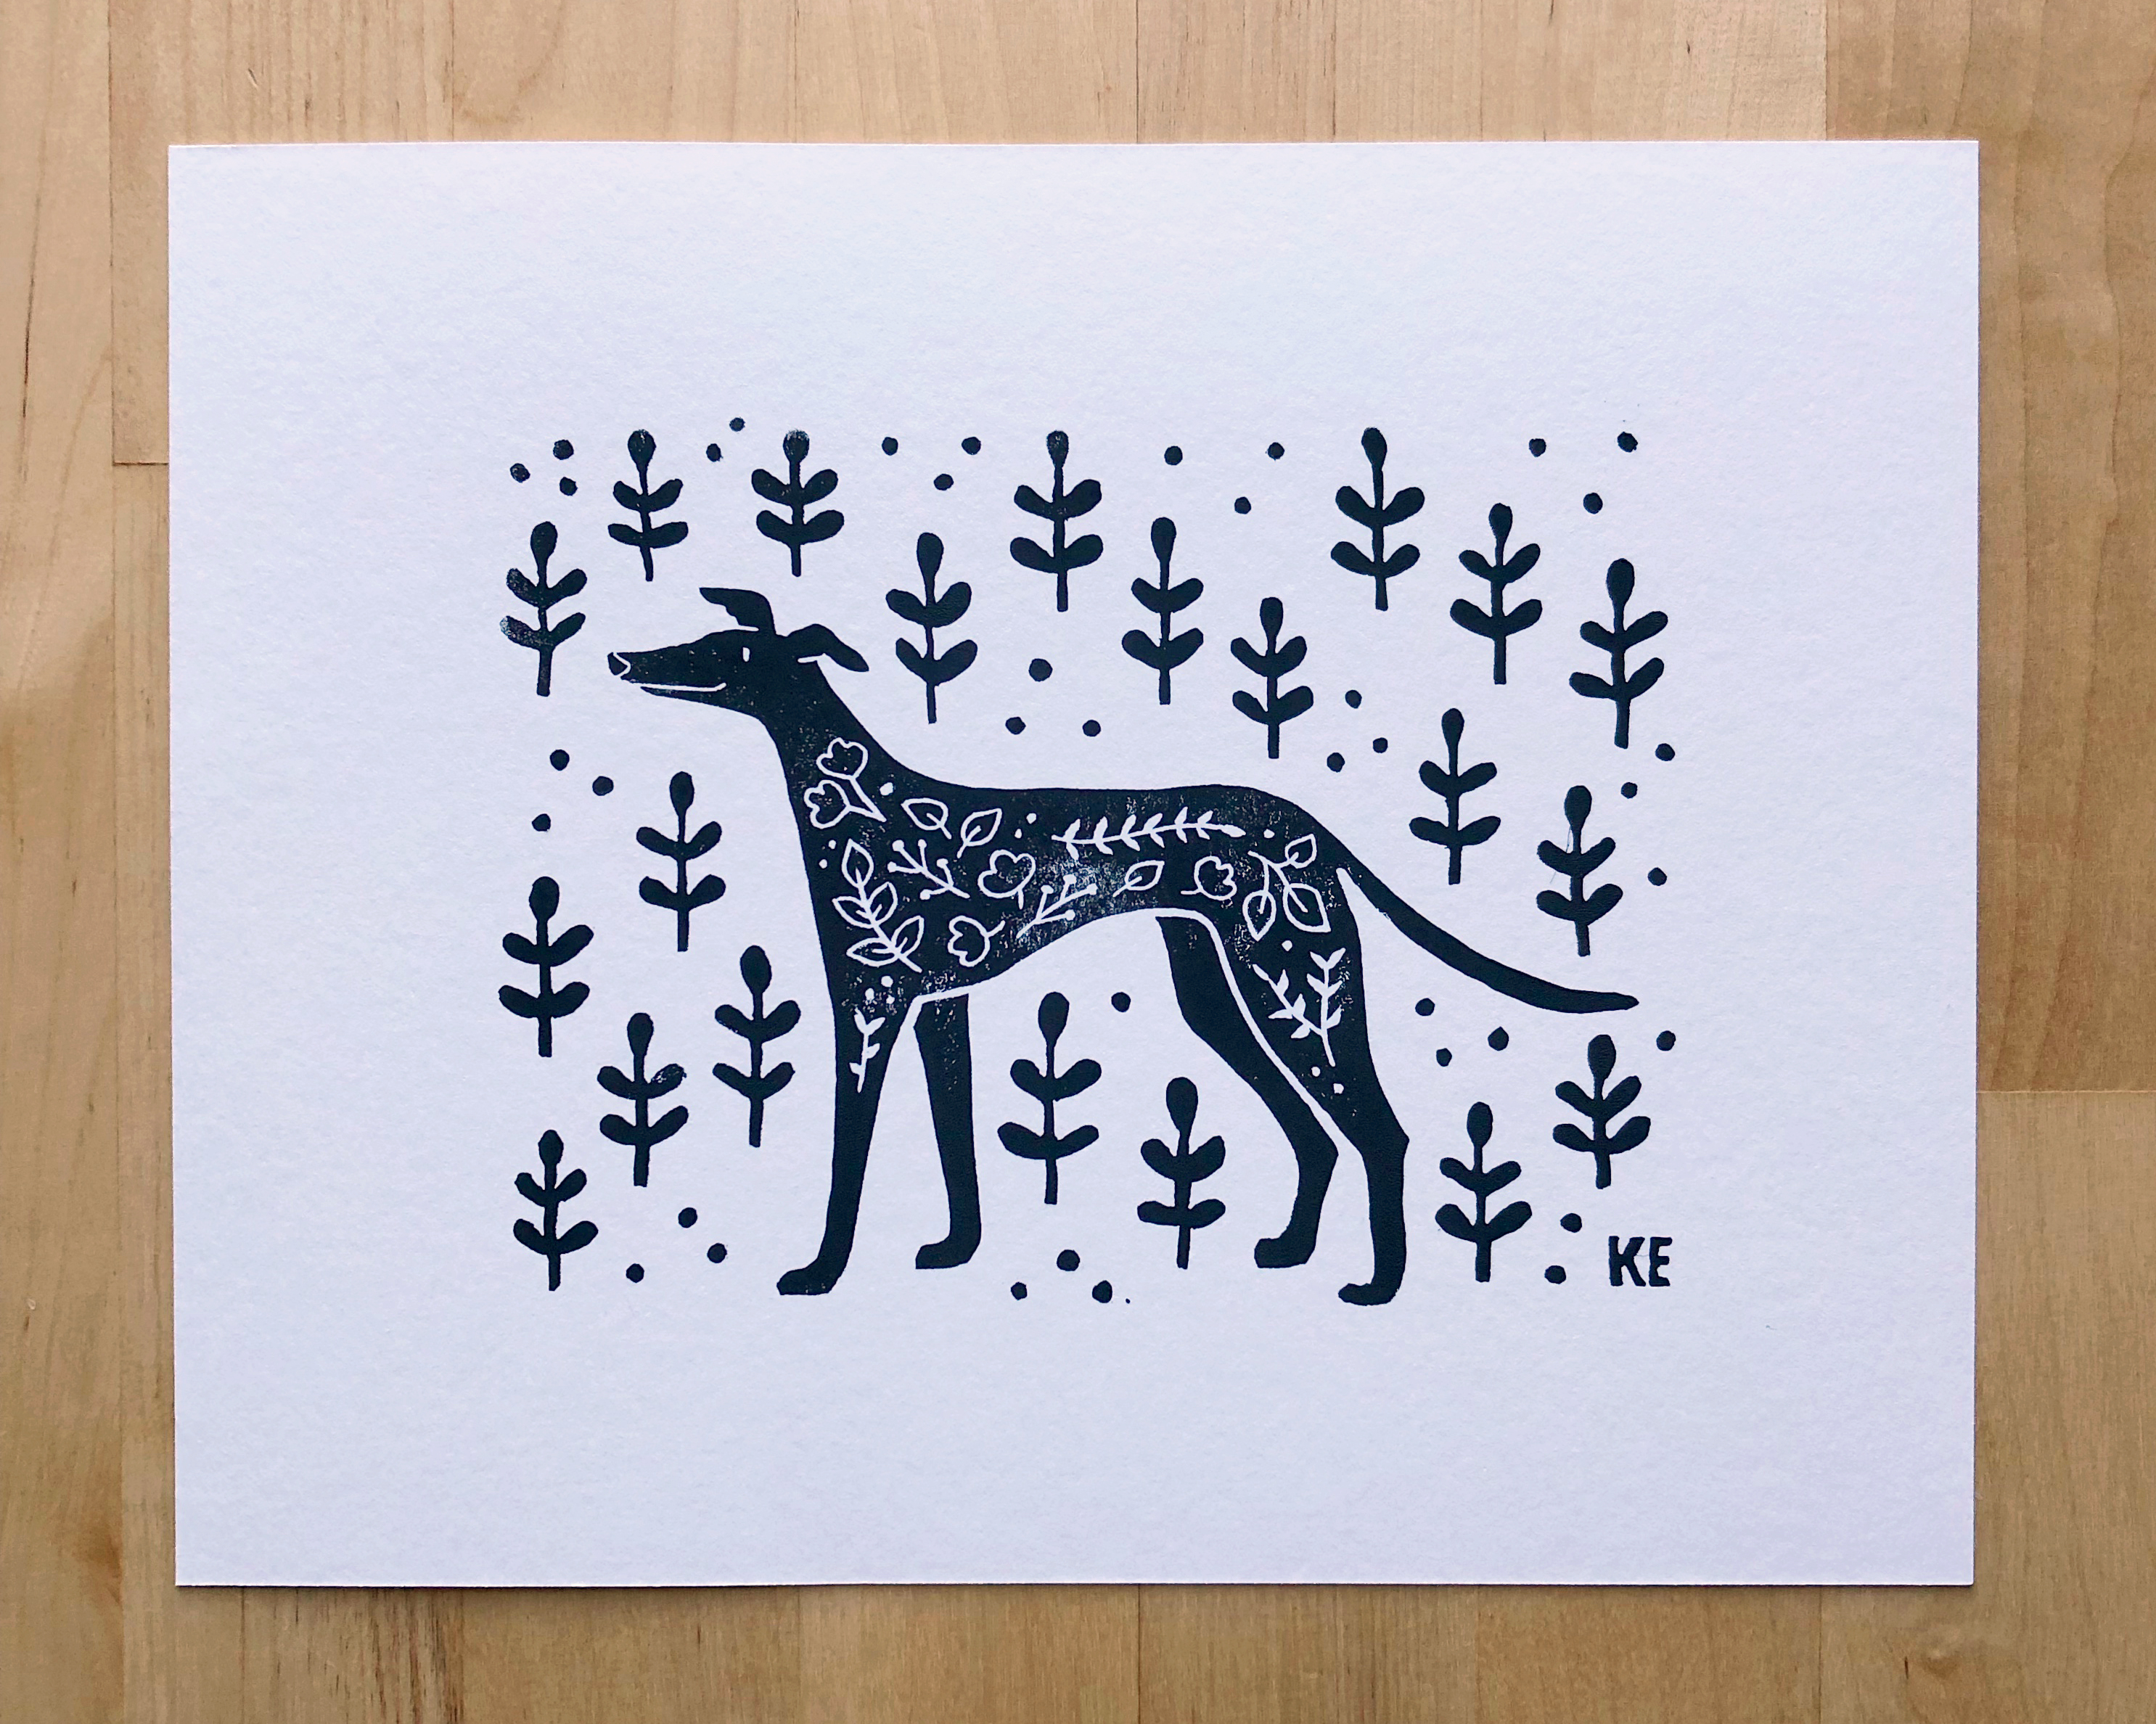 Block Print of a greyhound surrounded by plants